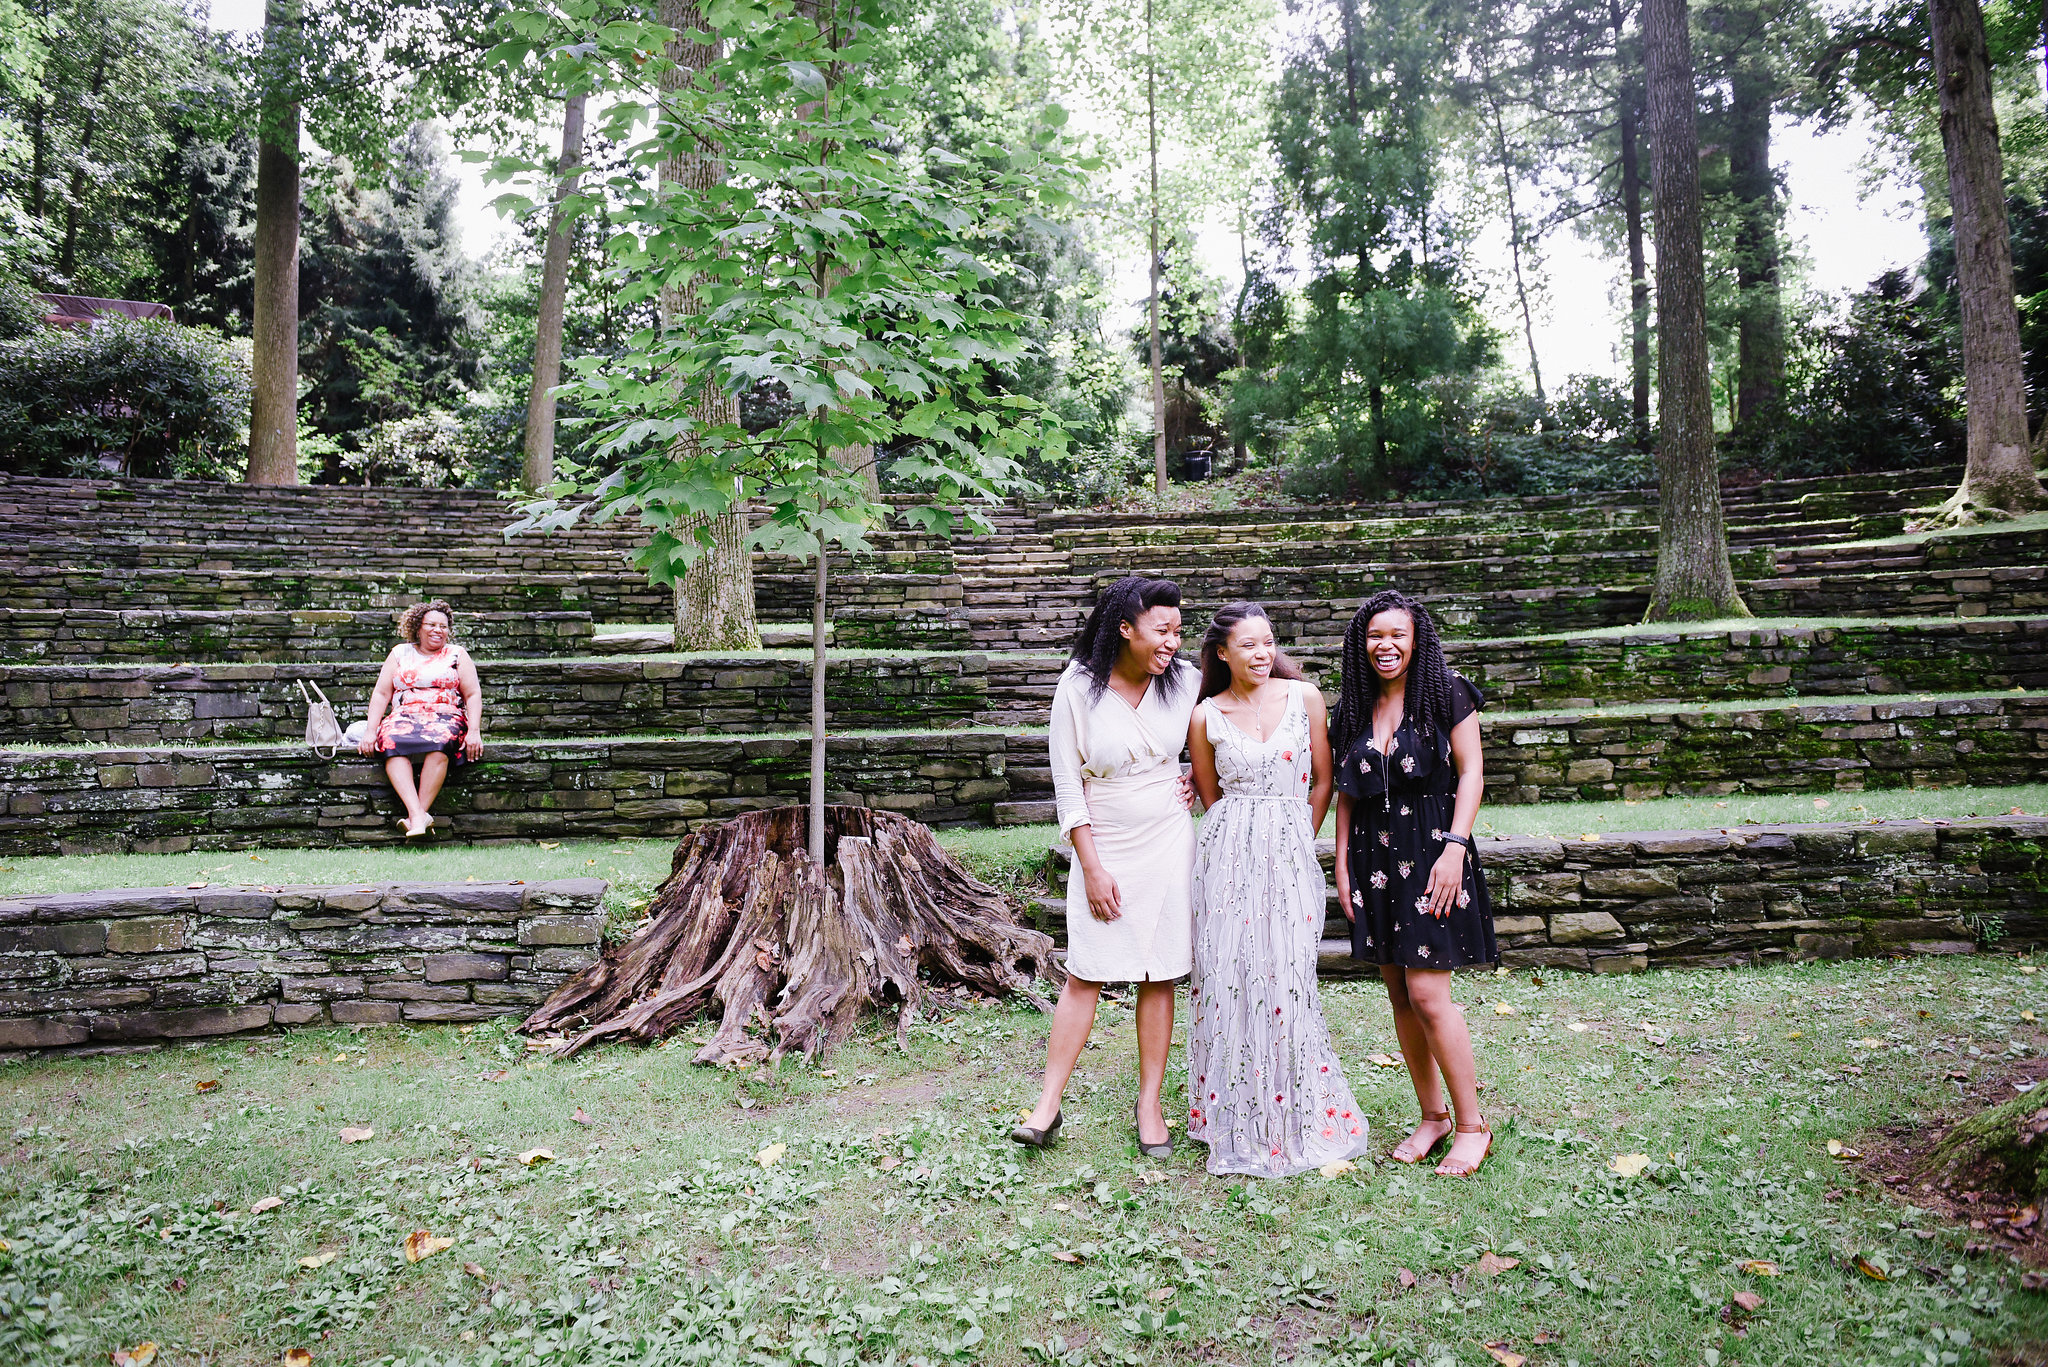 Between these three sisters and their mom sits a sapling growing inside the trunk of a older tree.